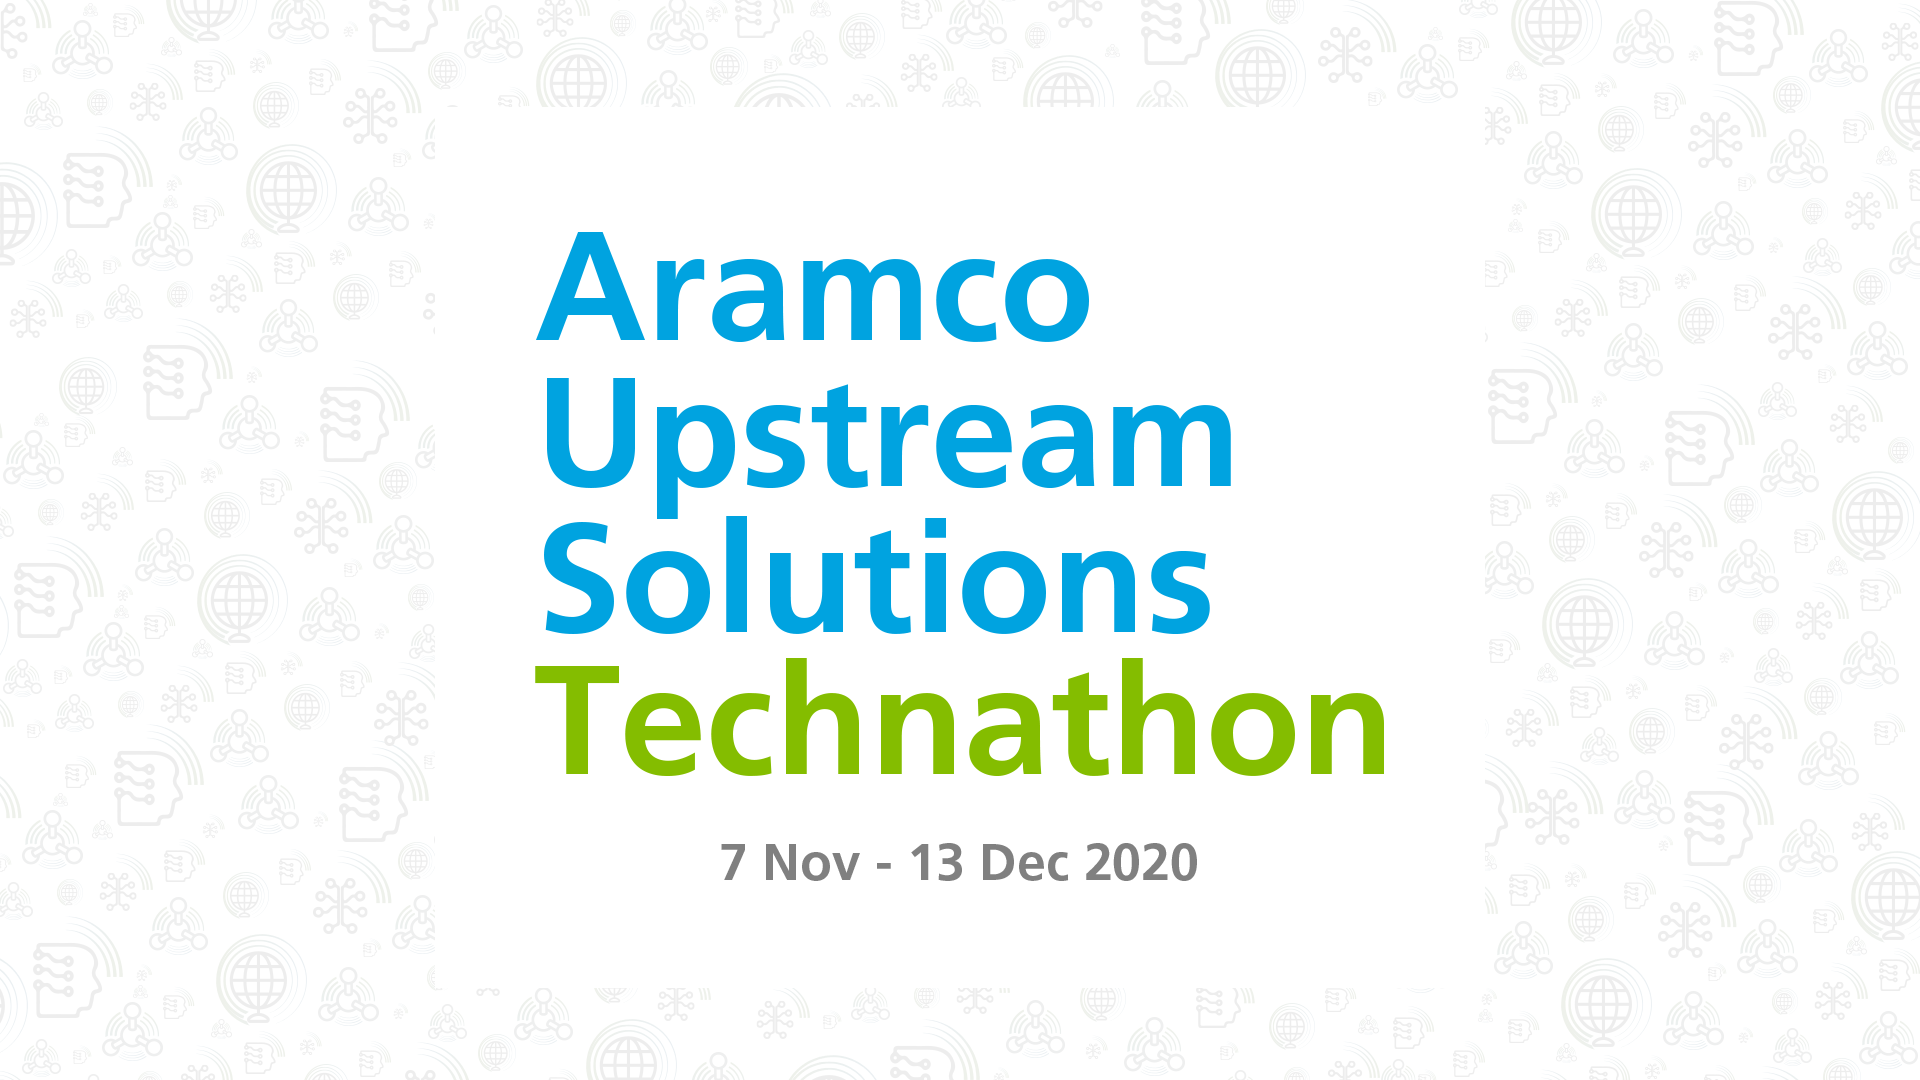 Aramco Upstream Solutions Technathon 2020